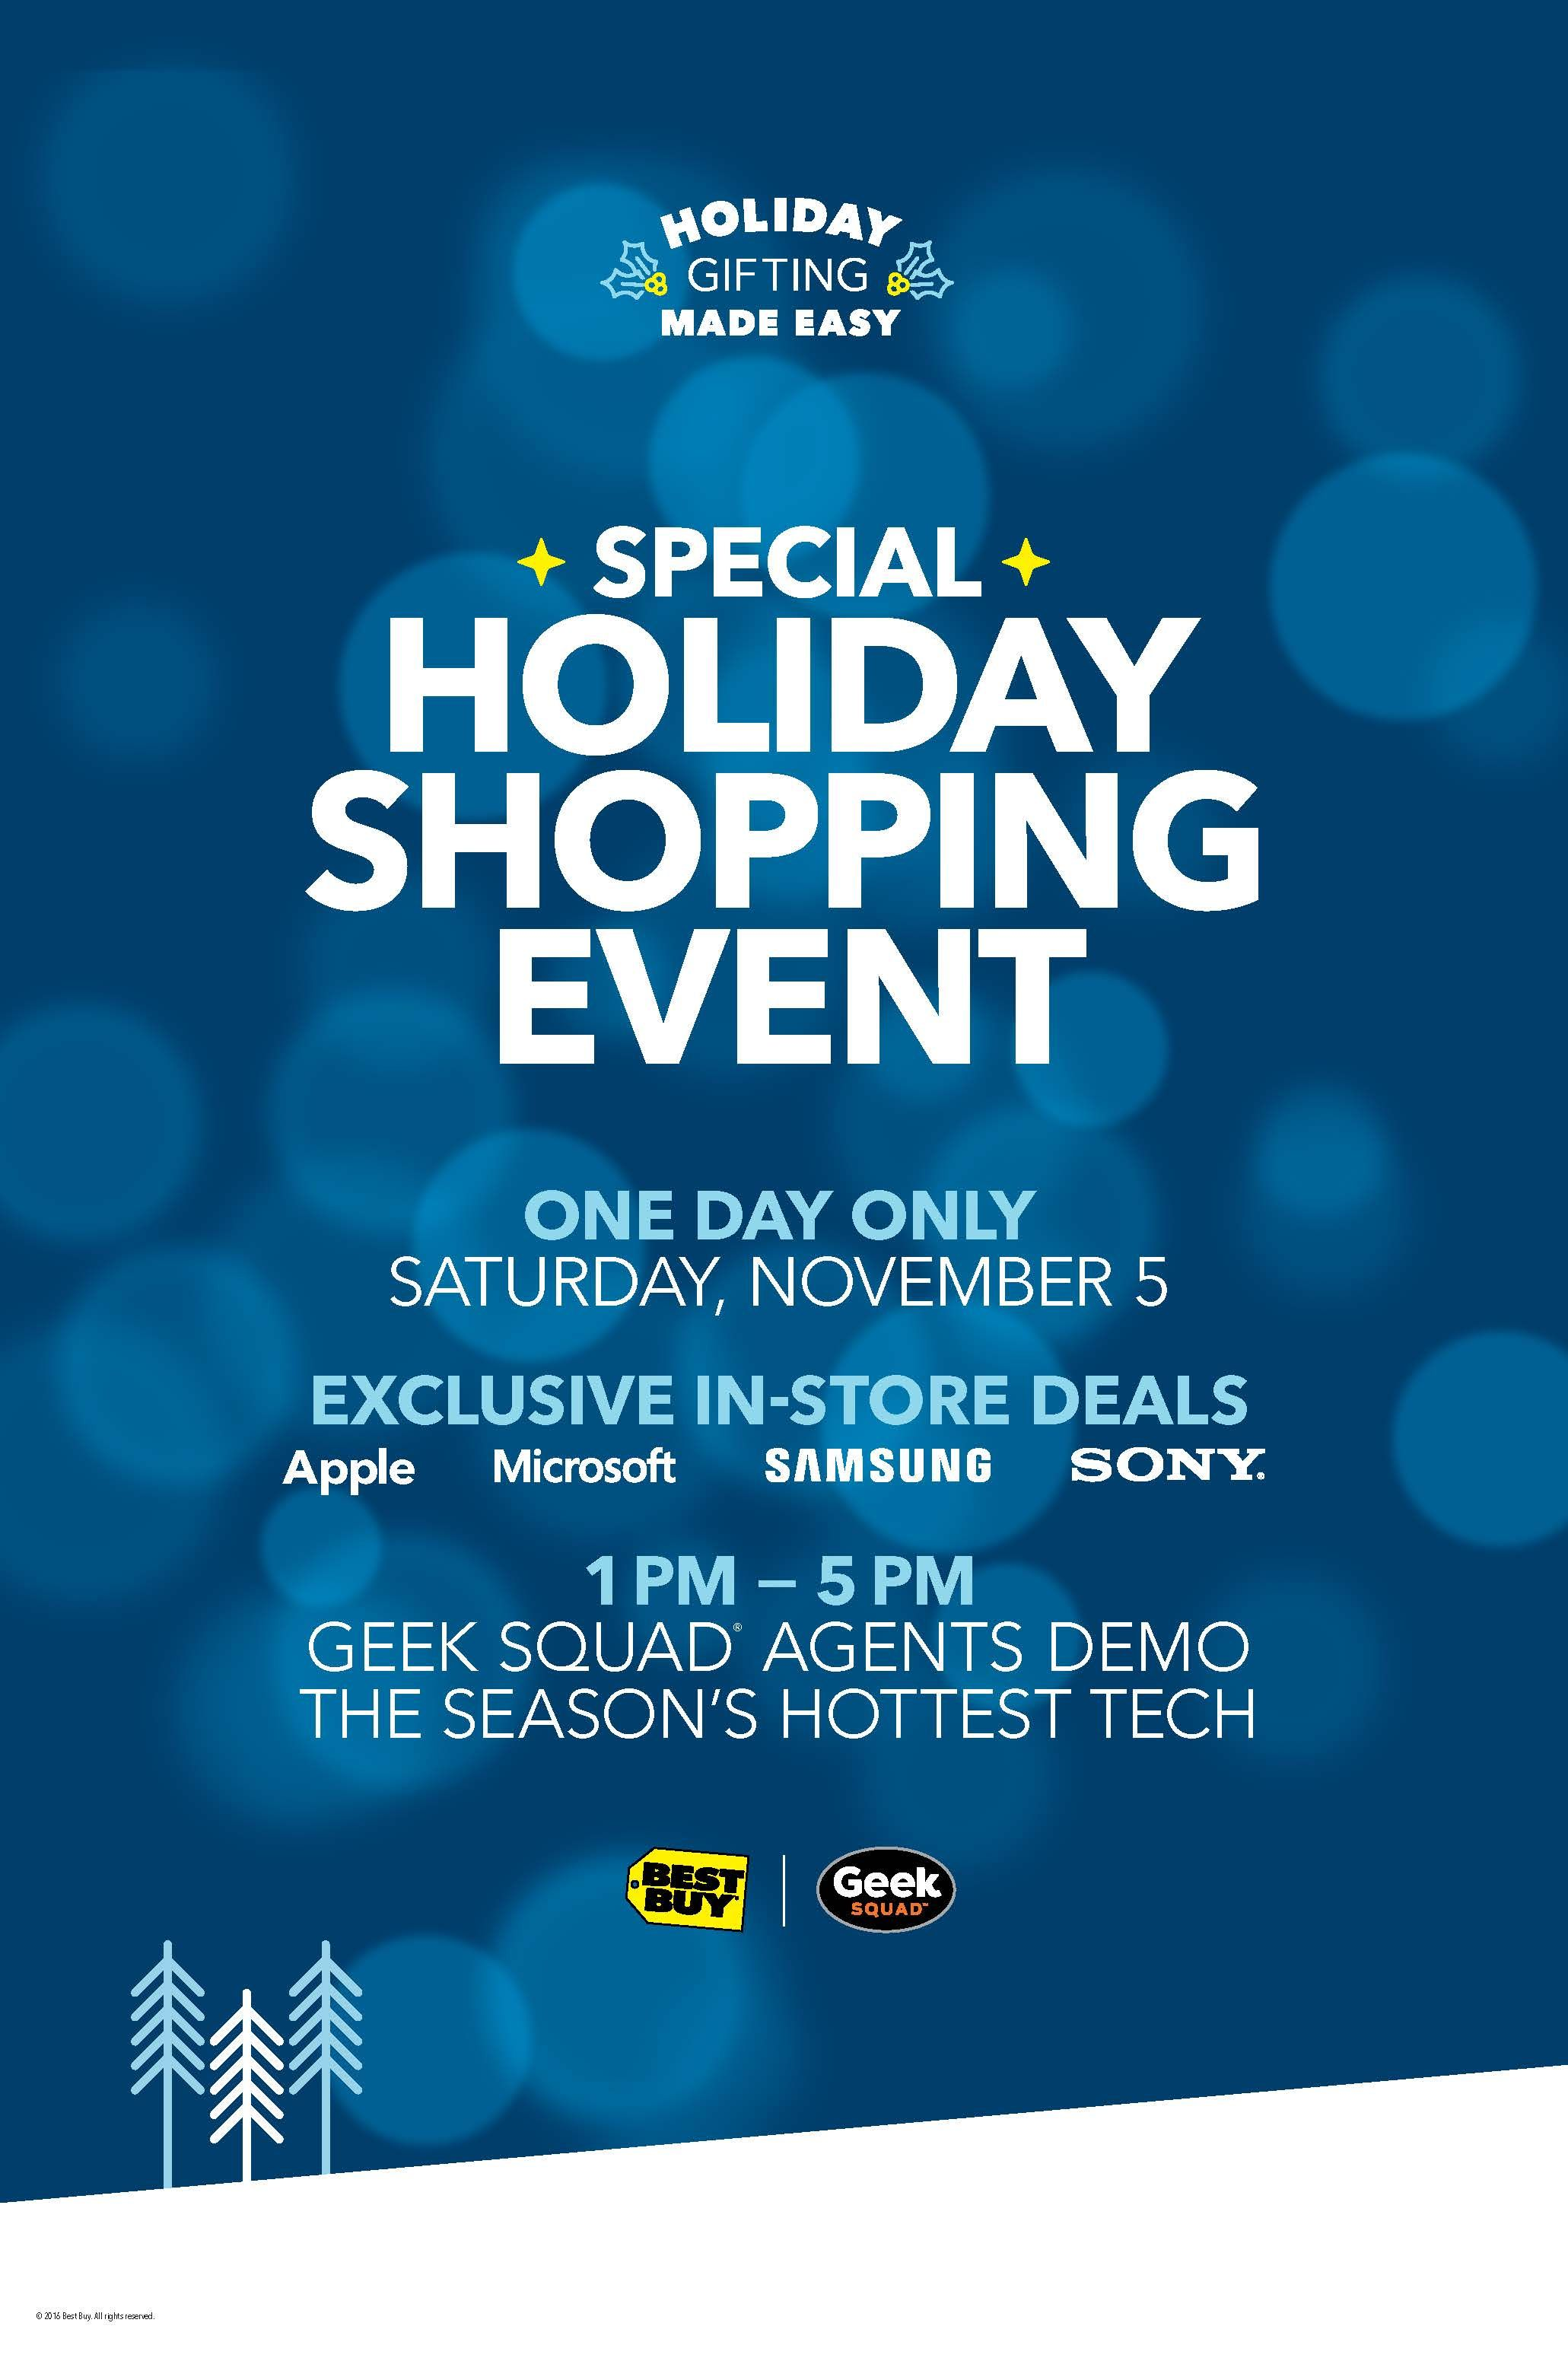 Best Buy Holiday Shopping Event Bestbuy Giftingmadeeasy Ad Night Helper Holiday Tech Gifts Shopping Event Cool Things To Buy